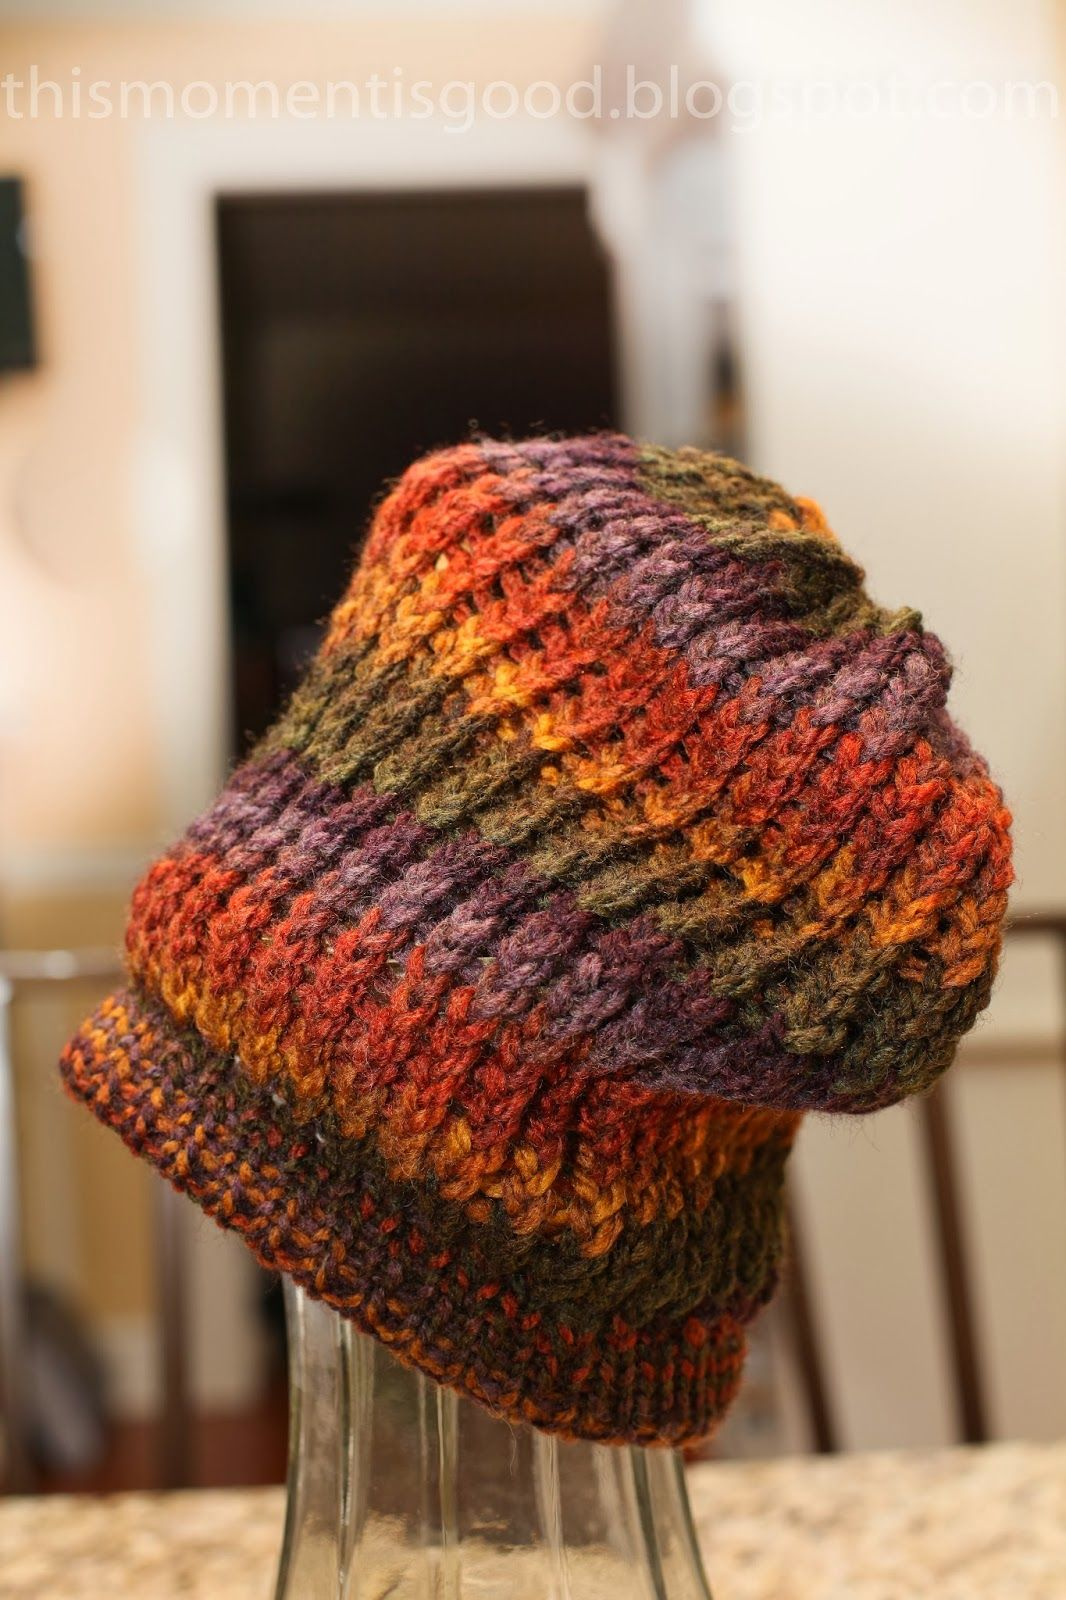 This Moment is Good!: LOOM KNIT HARVEST BEANIE | örgü | Pinterest ...